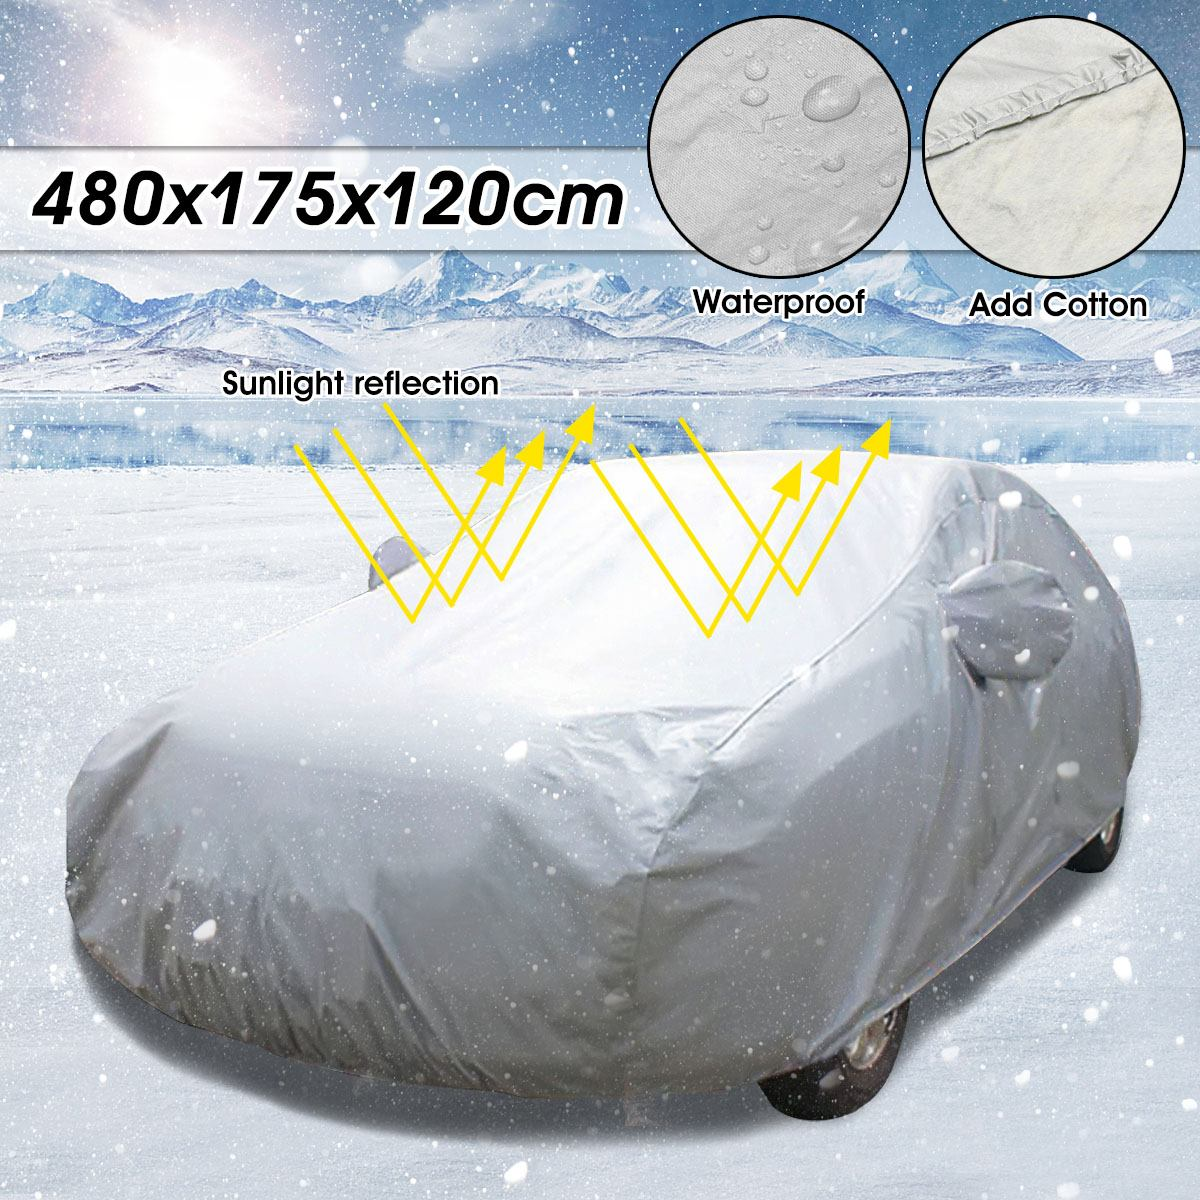 480*175*120cm Large Size Outdoor Car Auto Full Cover Snow Ice Rain Dust Sun Waterproof UV Anti scratch Protector Double Layer